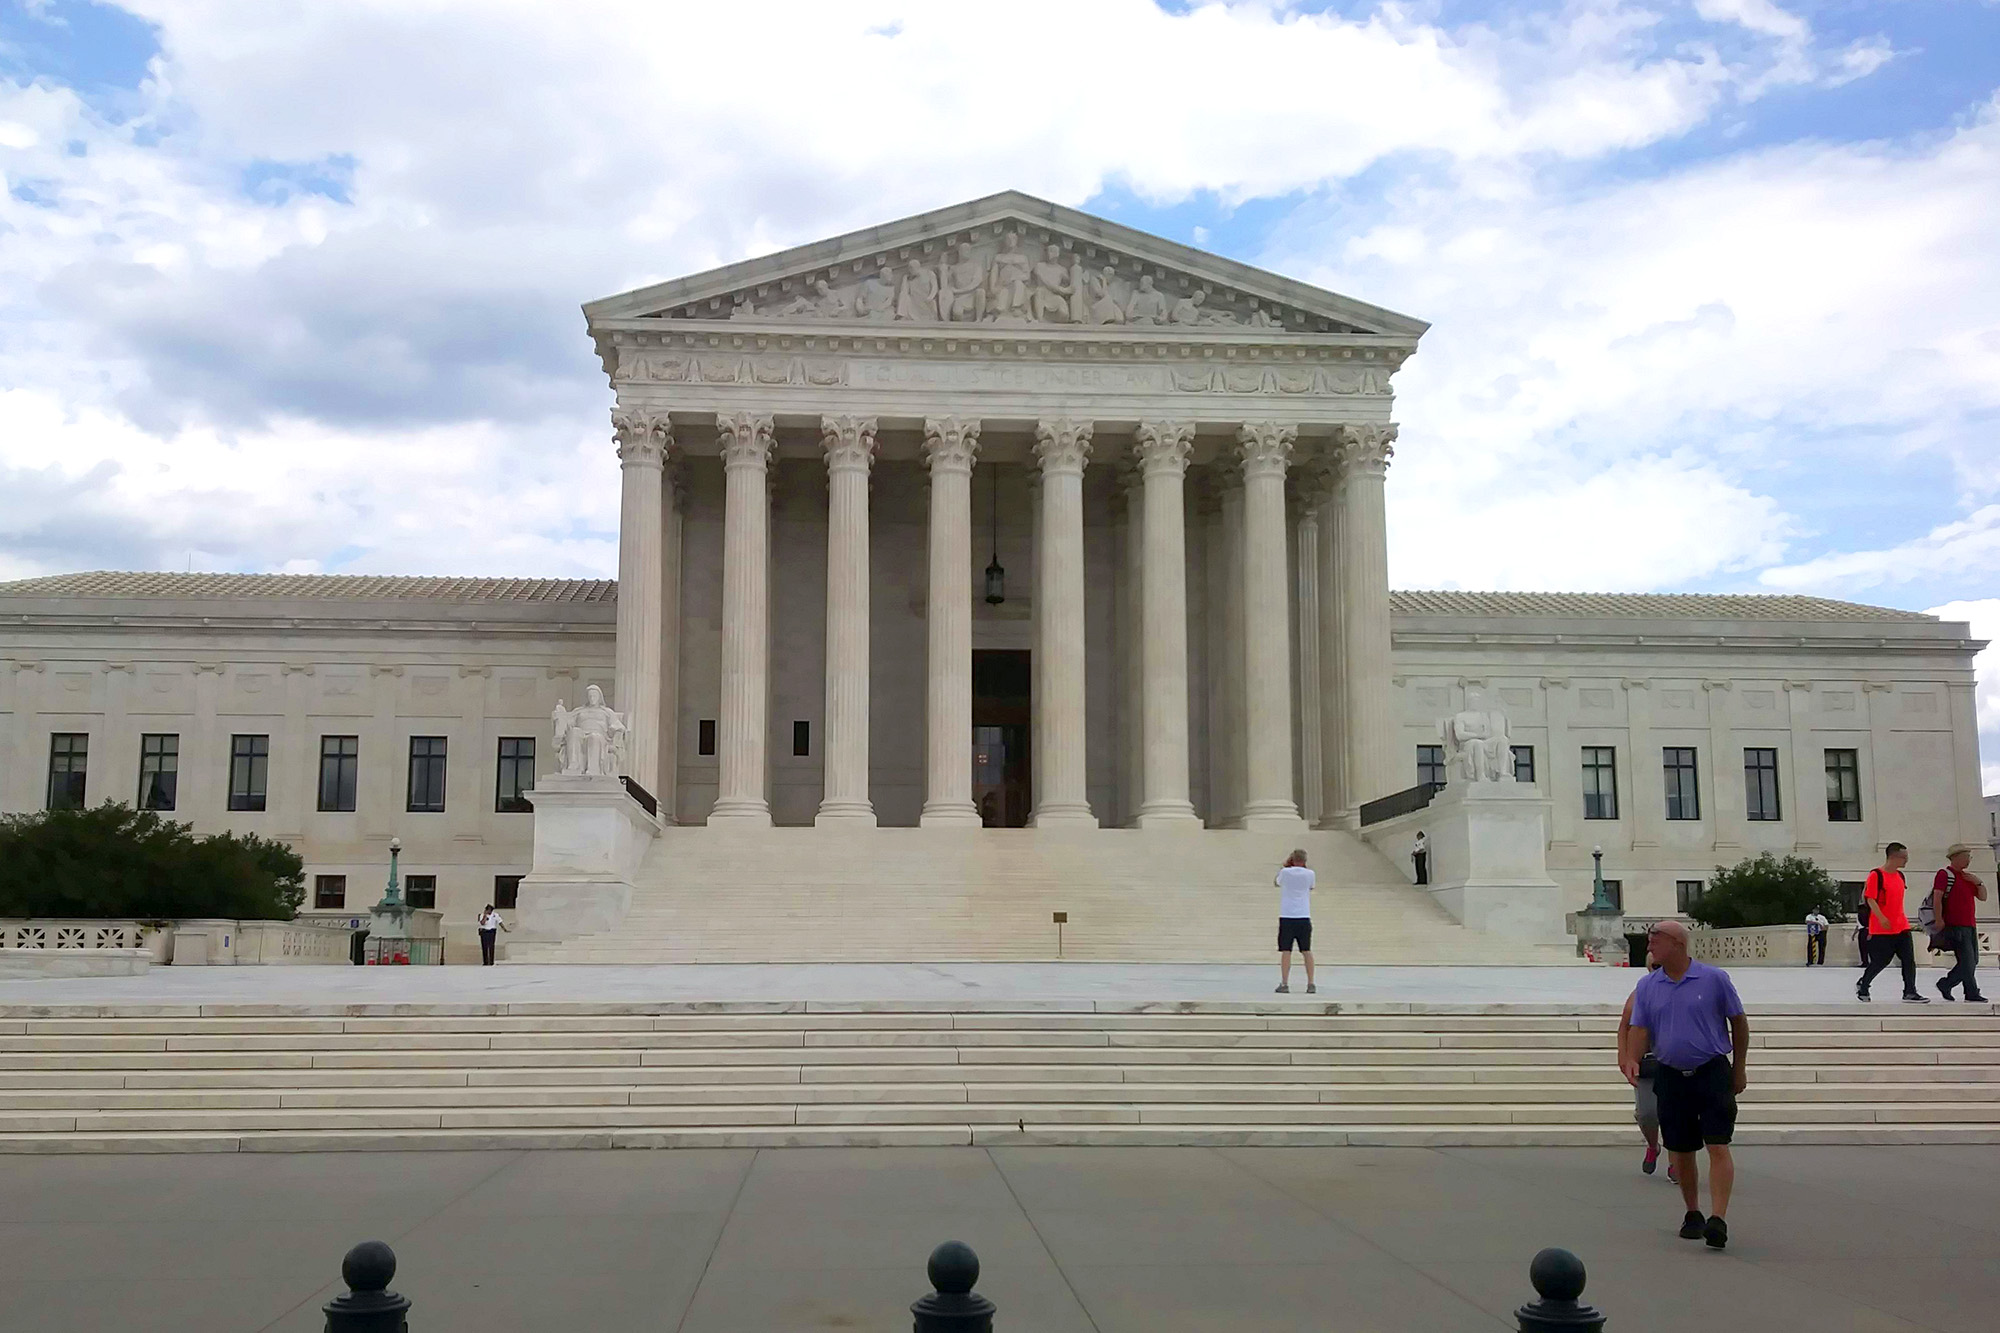 The United States Supreme Court building.